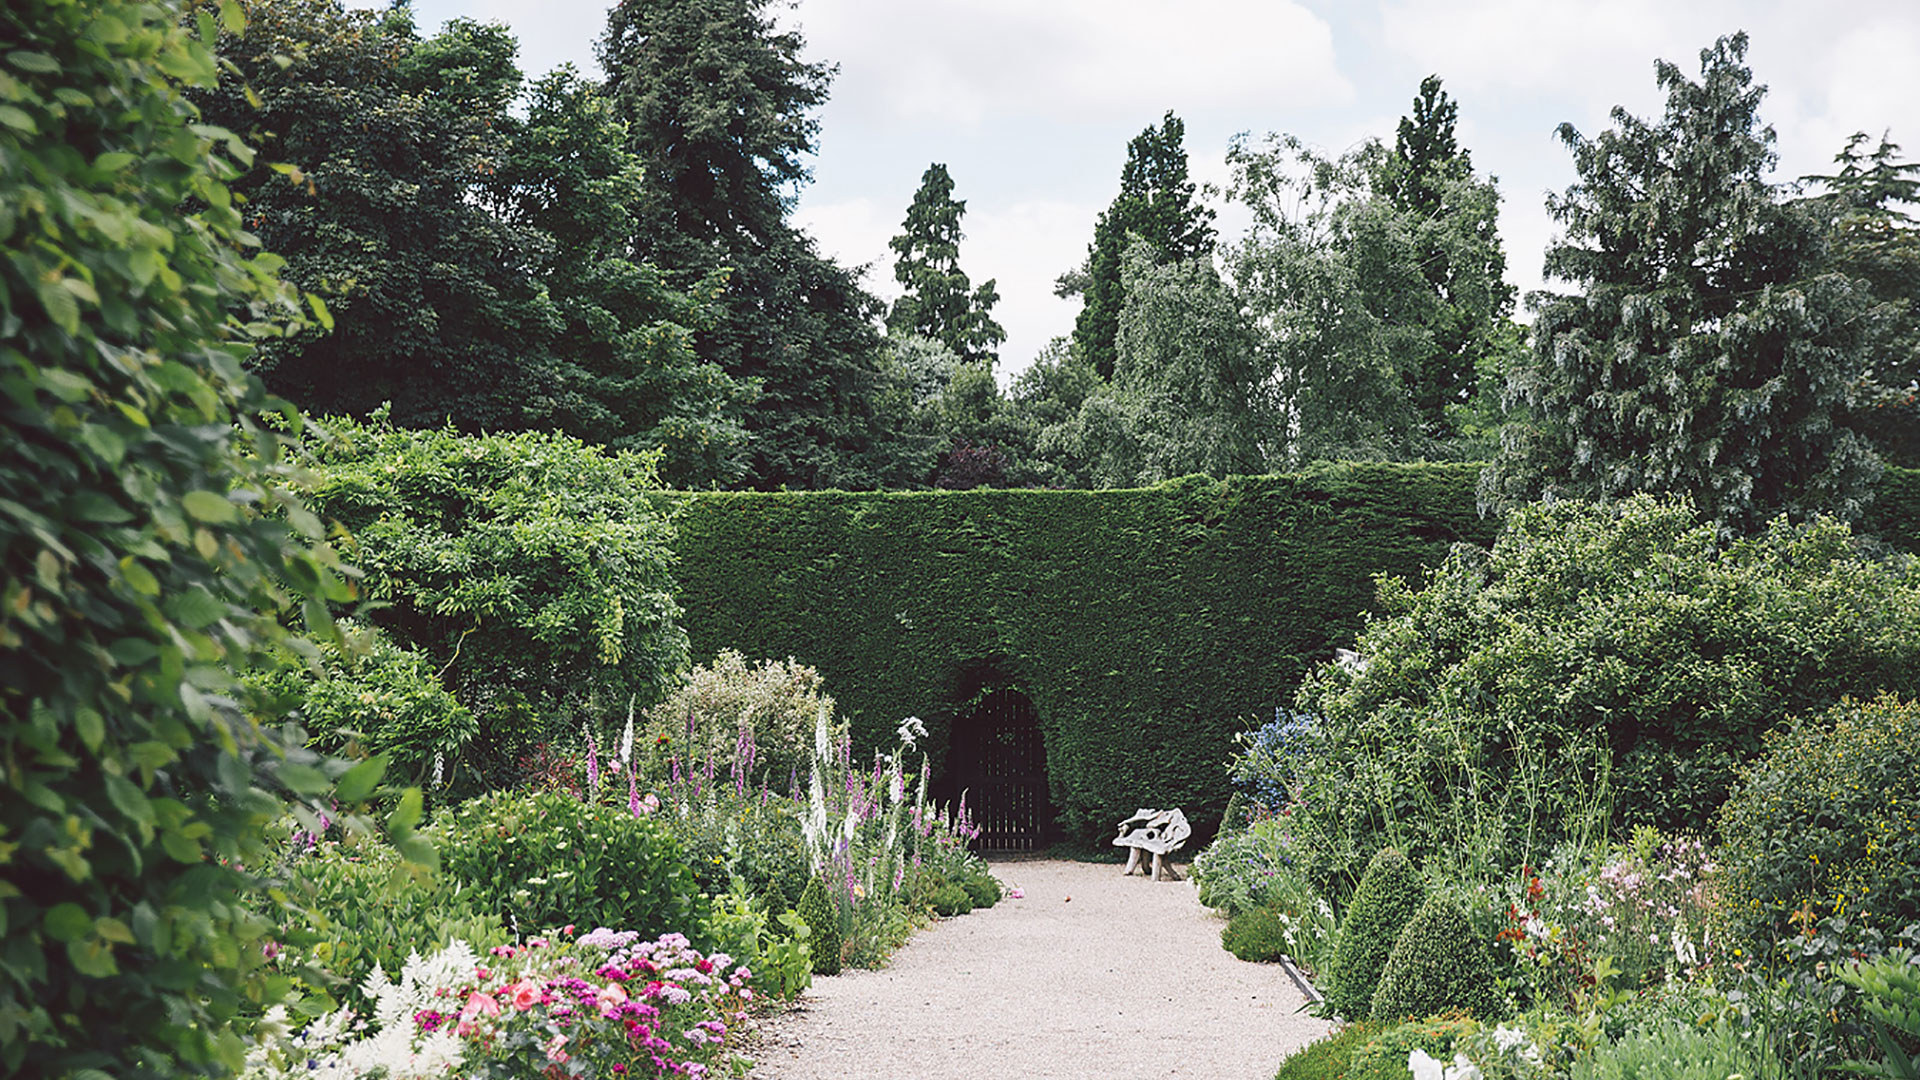 The Long Walk is a pretty outdoor wedding aisle leading to the Orangery where your wedding ceremony will be held